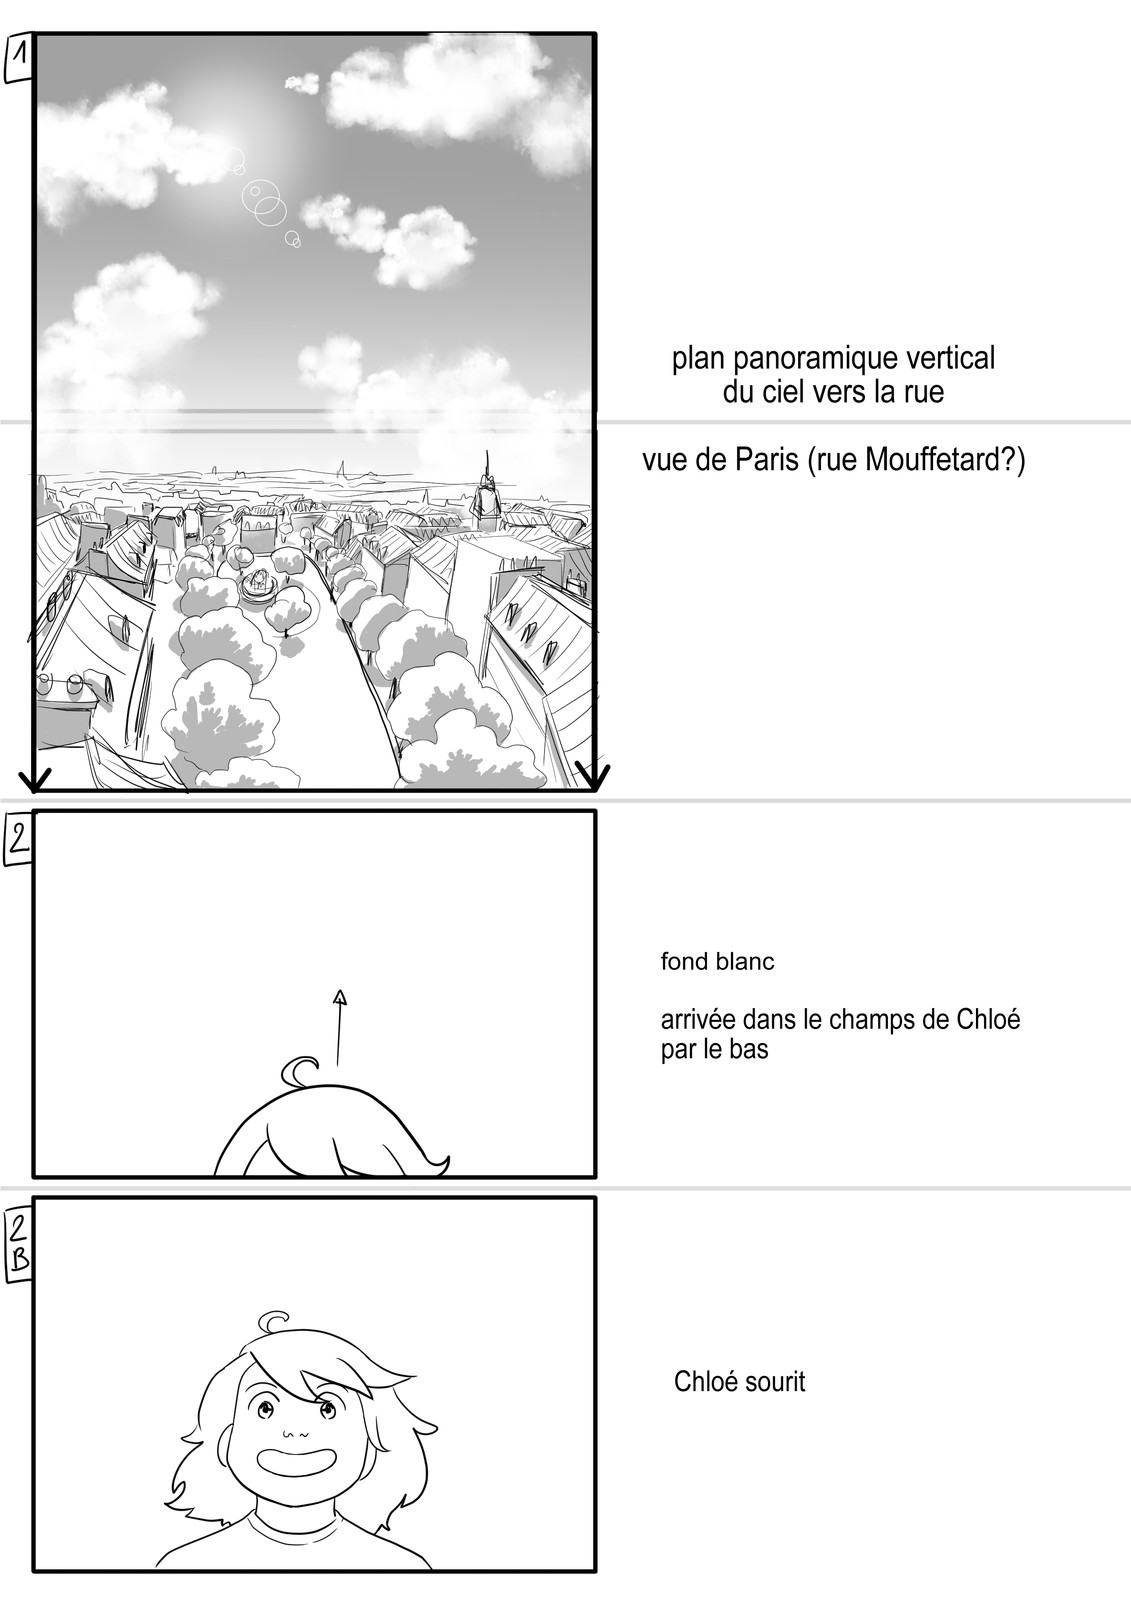 Storyboard for an animated Short - Page 1 - (In French)